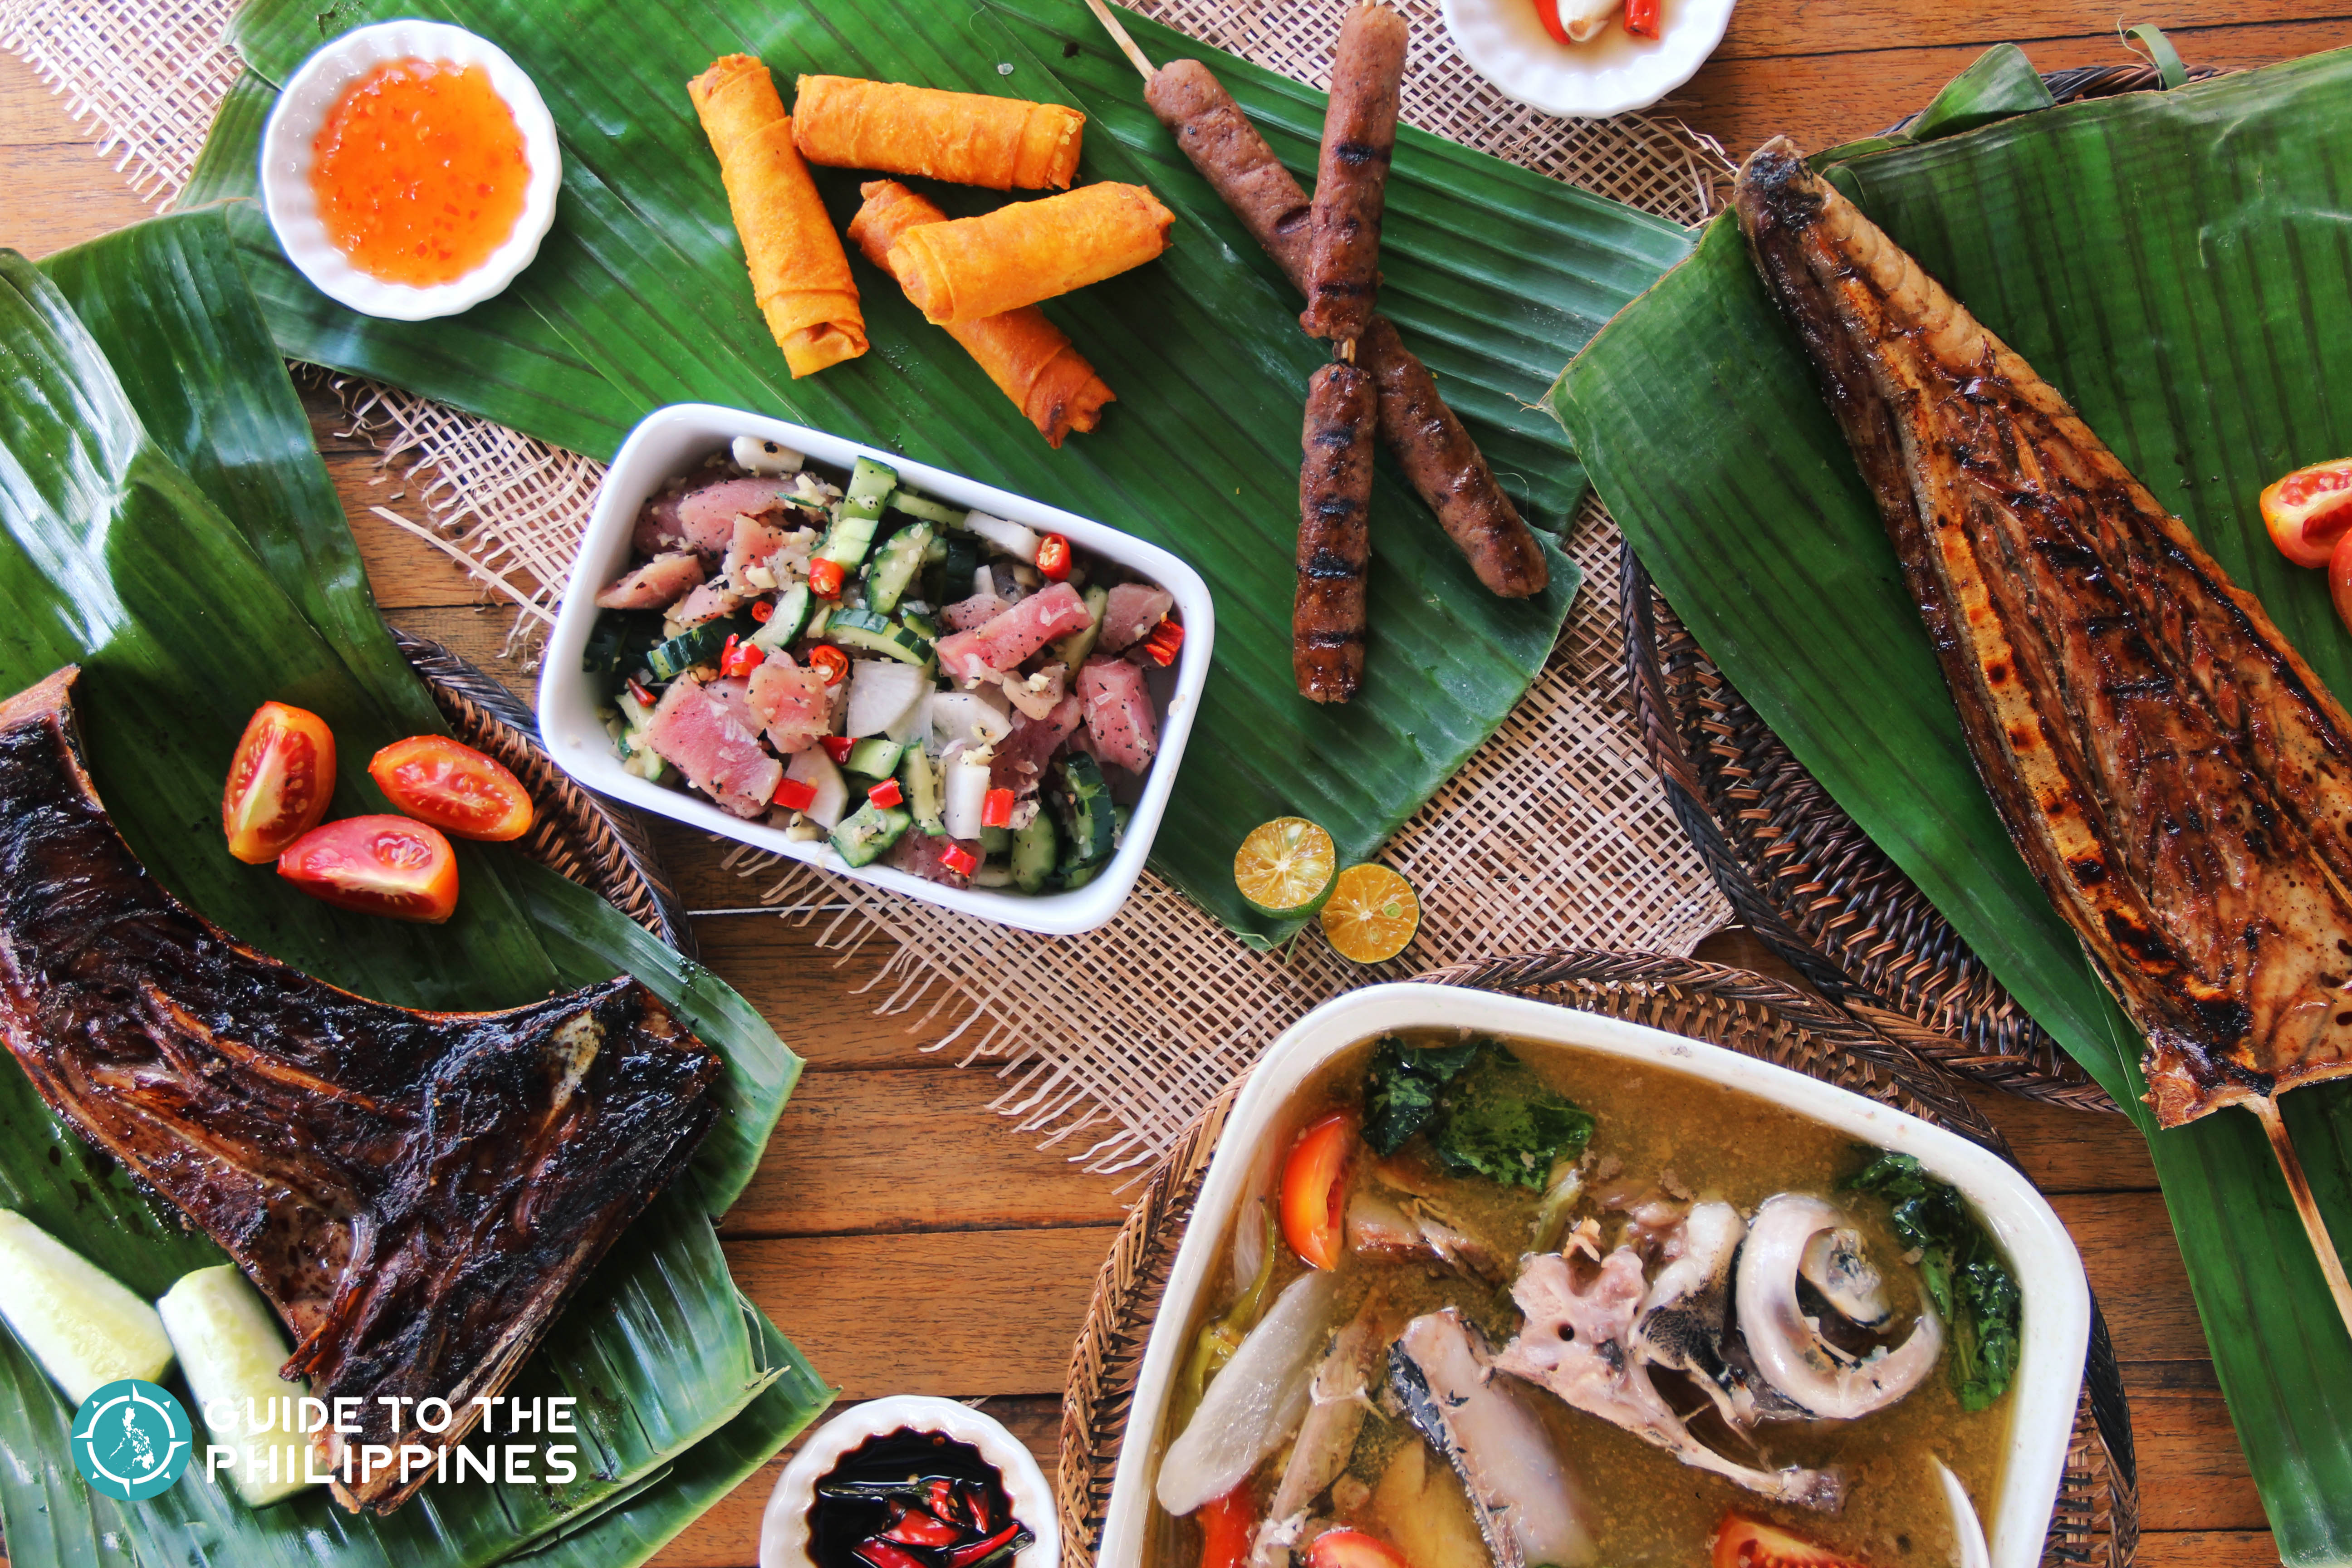 Detailed Guide to Local Cuisine of the Philippines